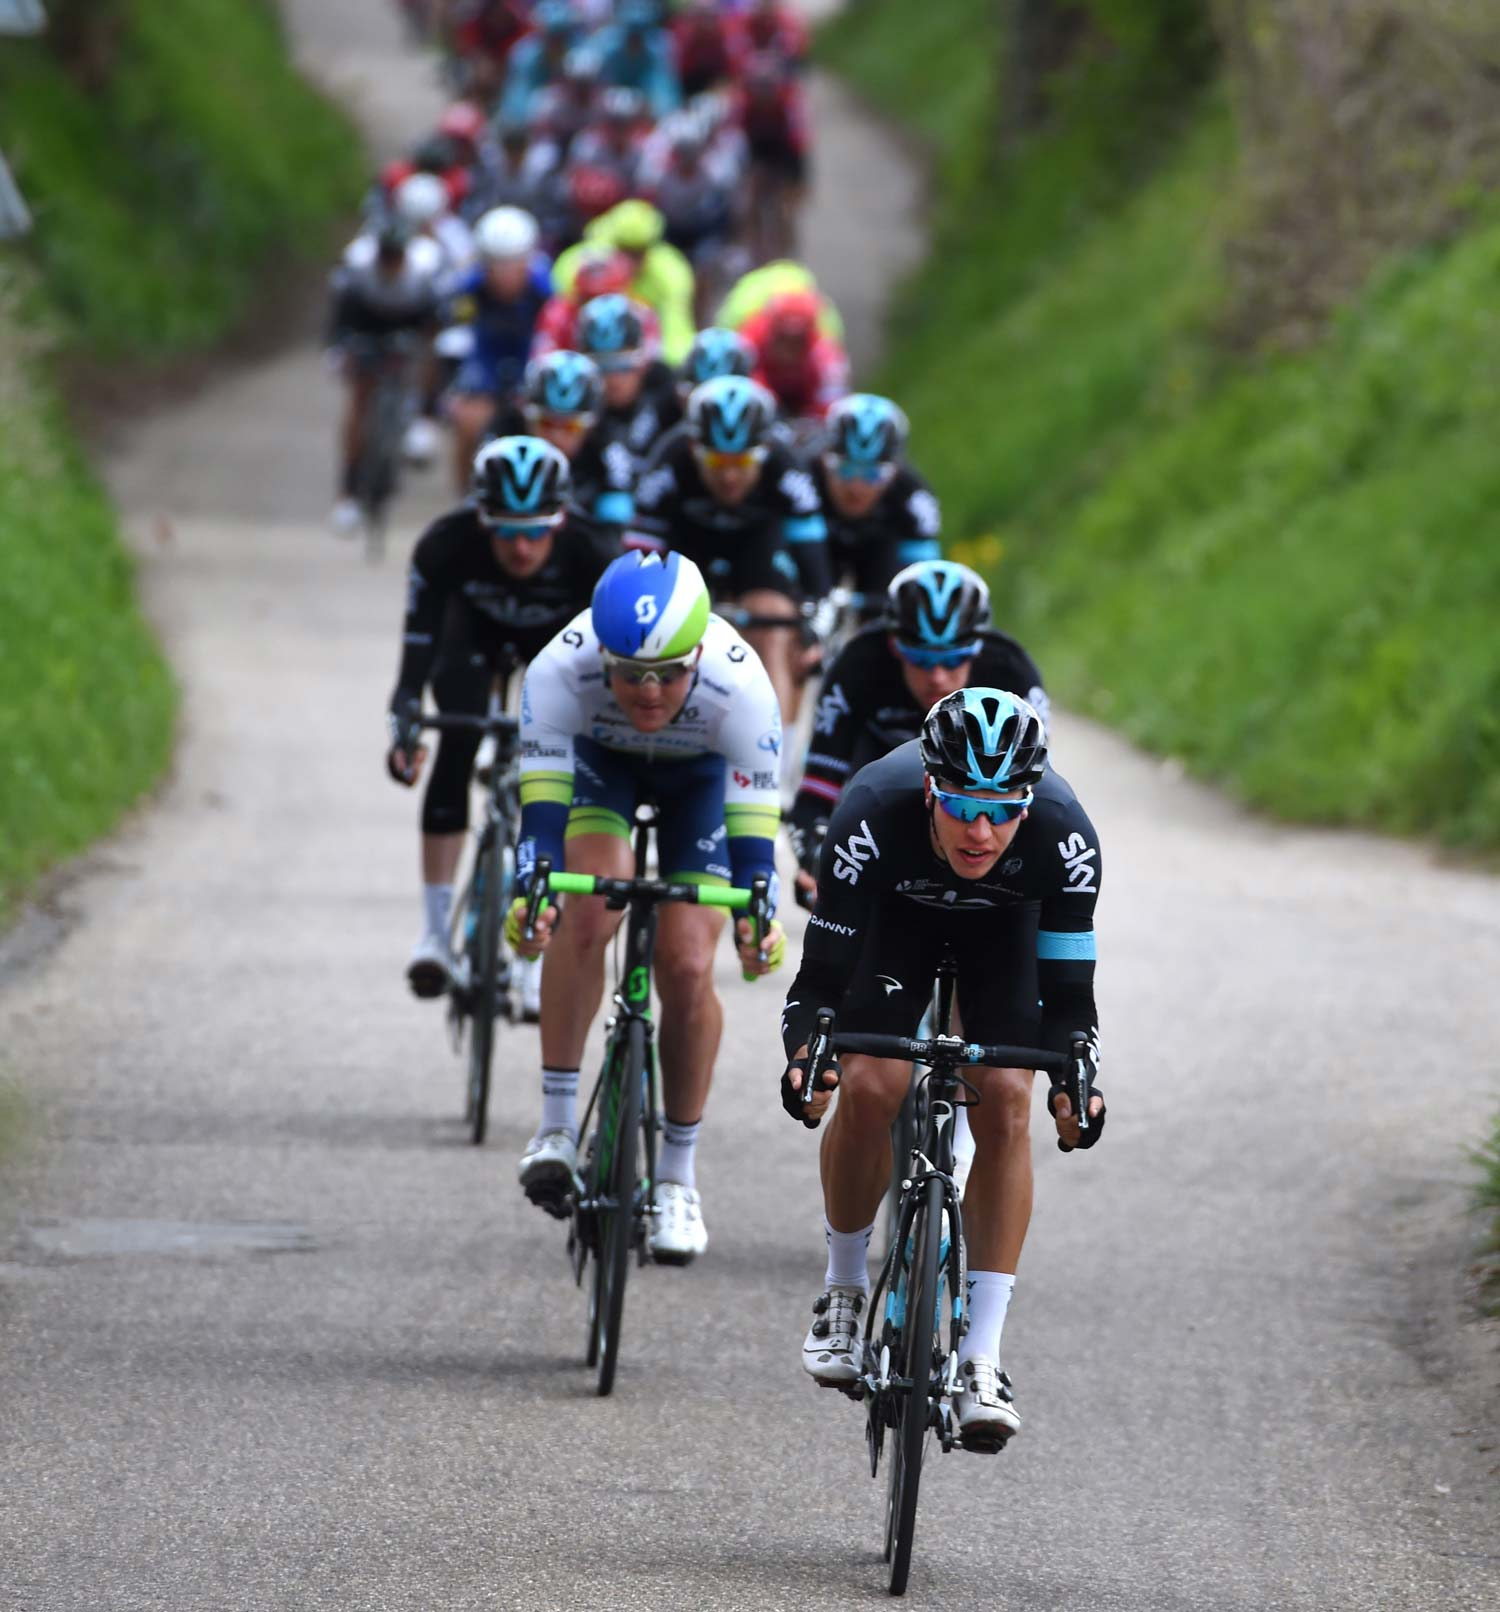 Team Sky was dominant at the front of the peloton for much of the race but there was little reward. The best of the British team? 28th place. Photo: Graham Watson